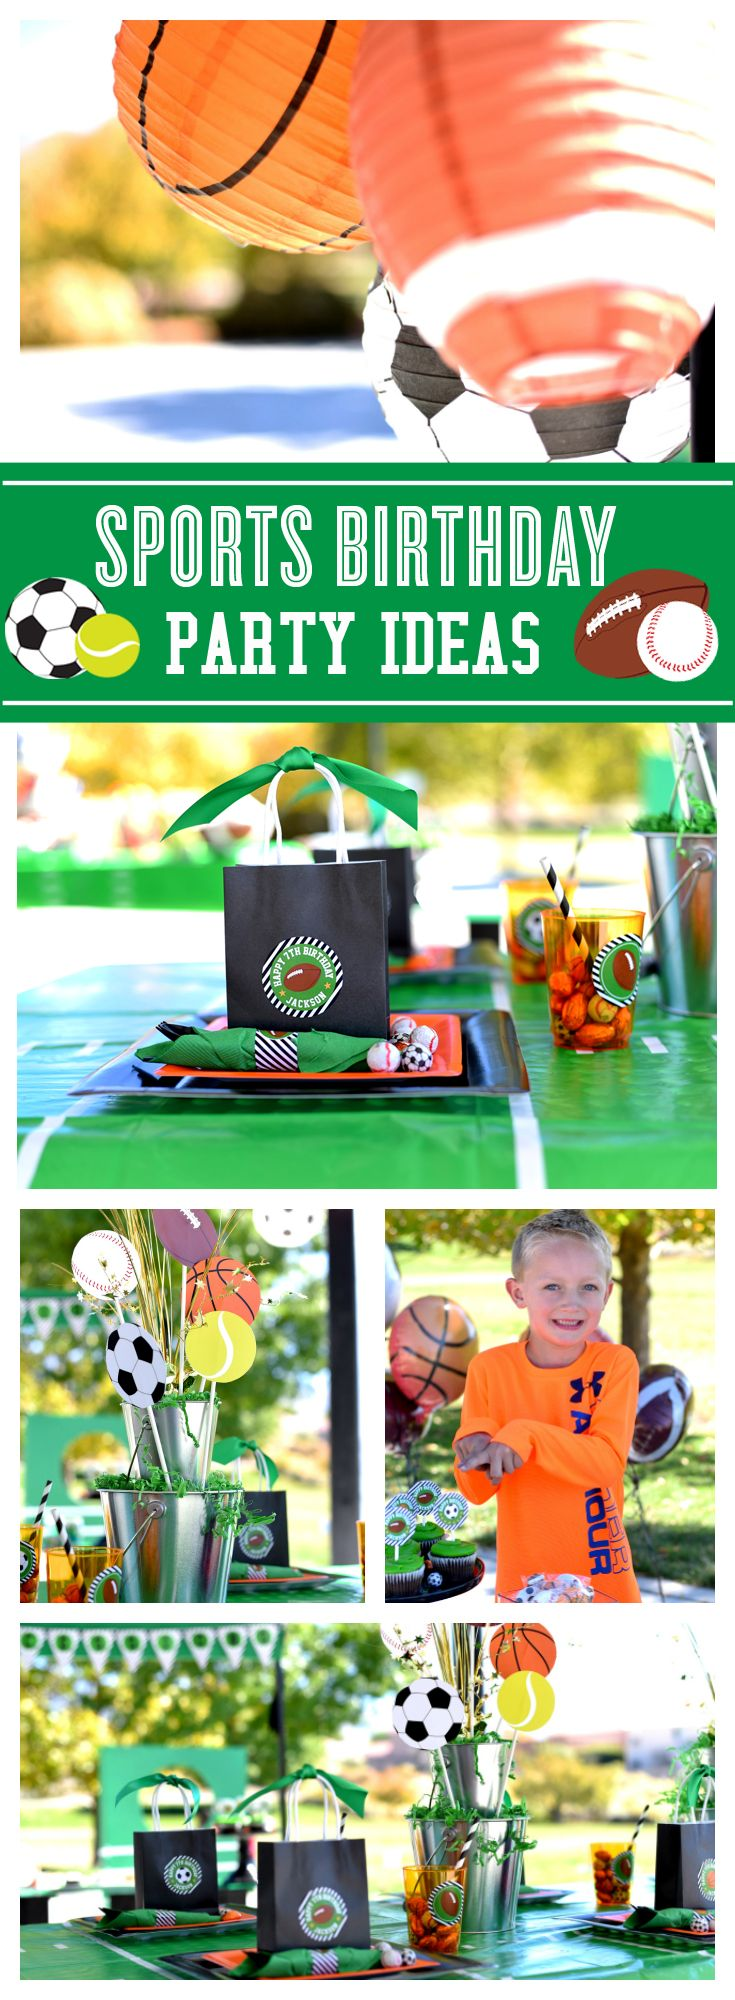 Can't get enough of these Sports Birthday party ideas